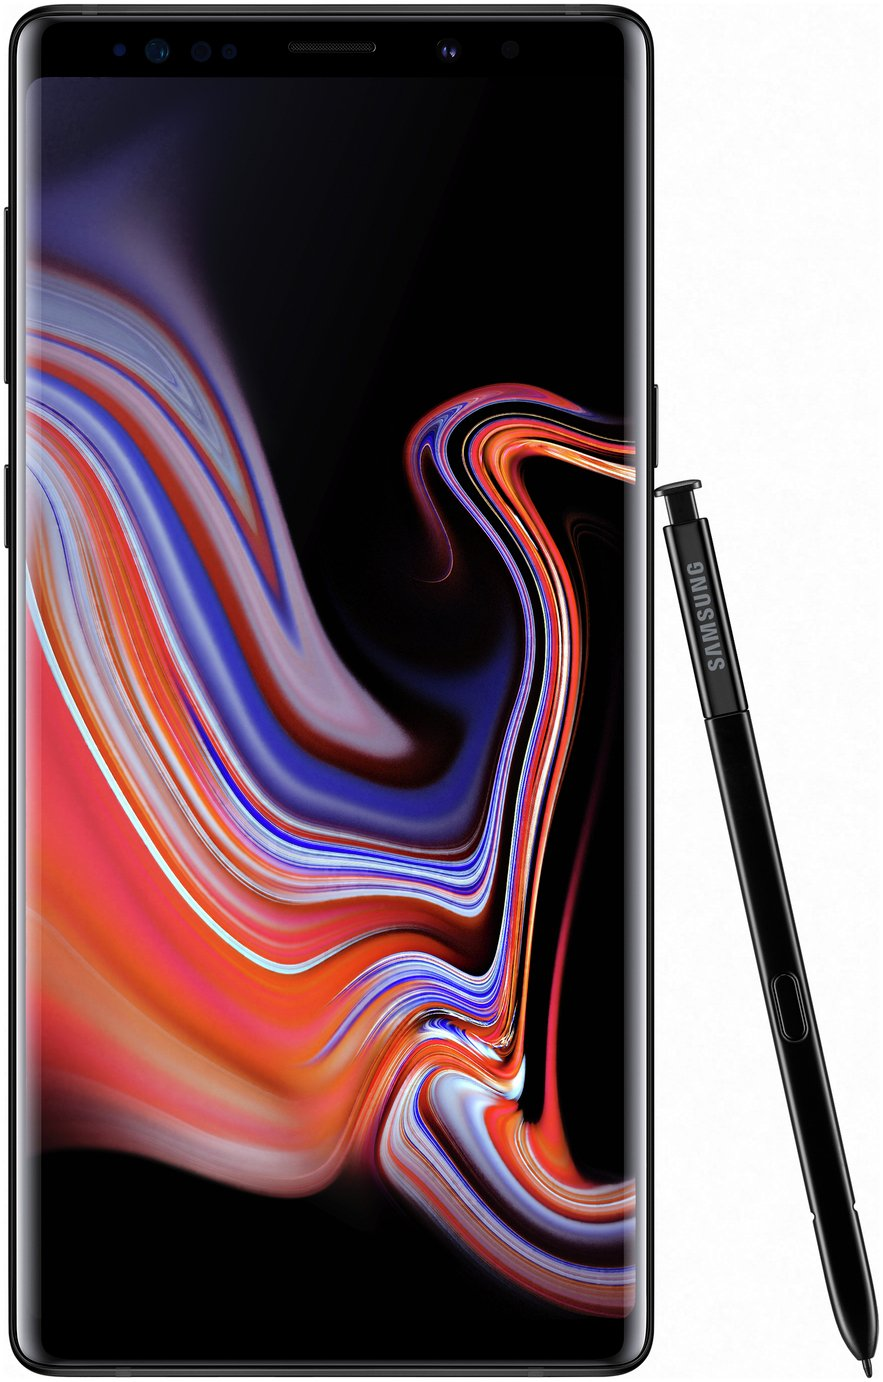 SIM Free Samsung Galaxy Note 9 128GB Mobile Phone - Black